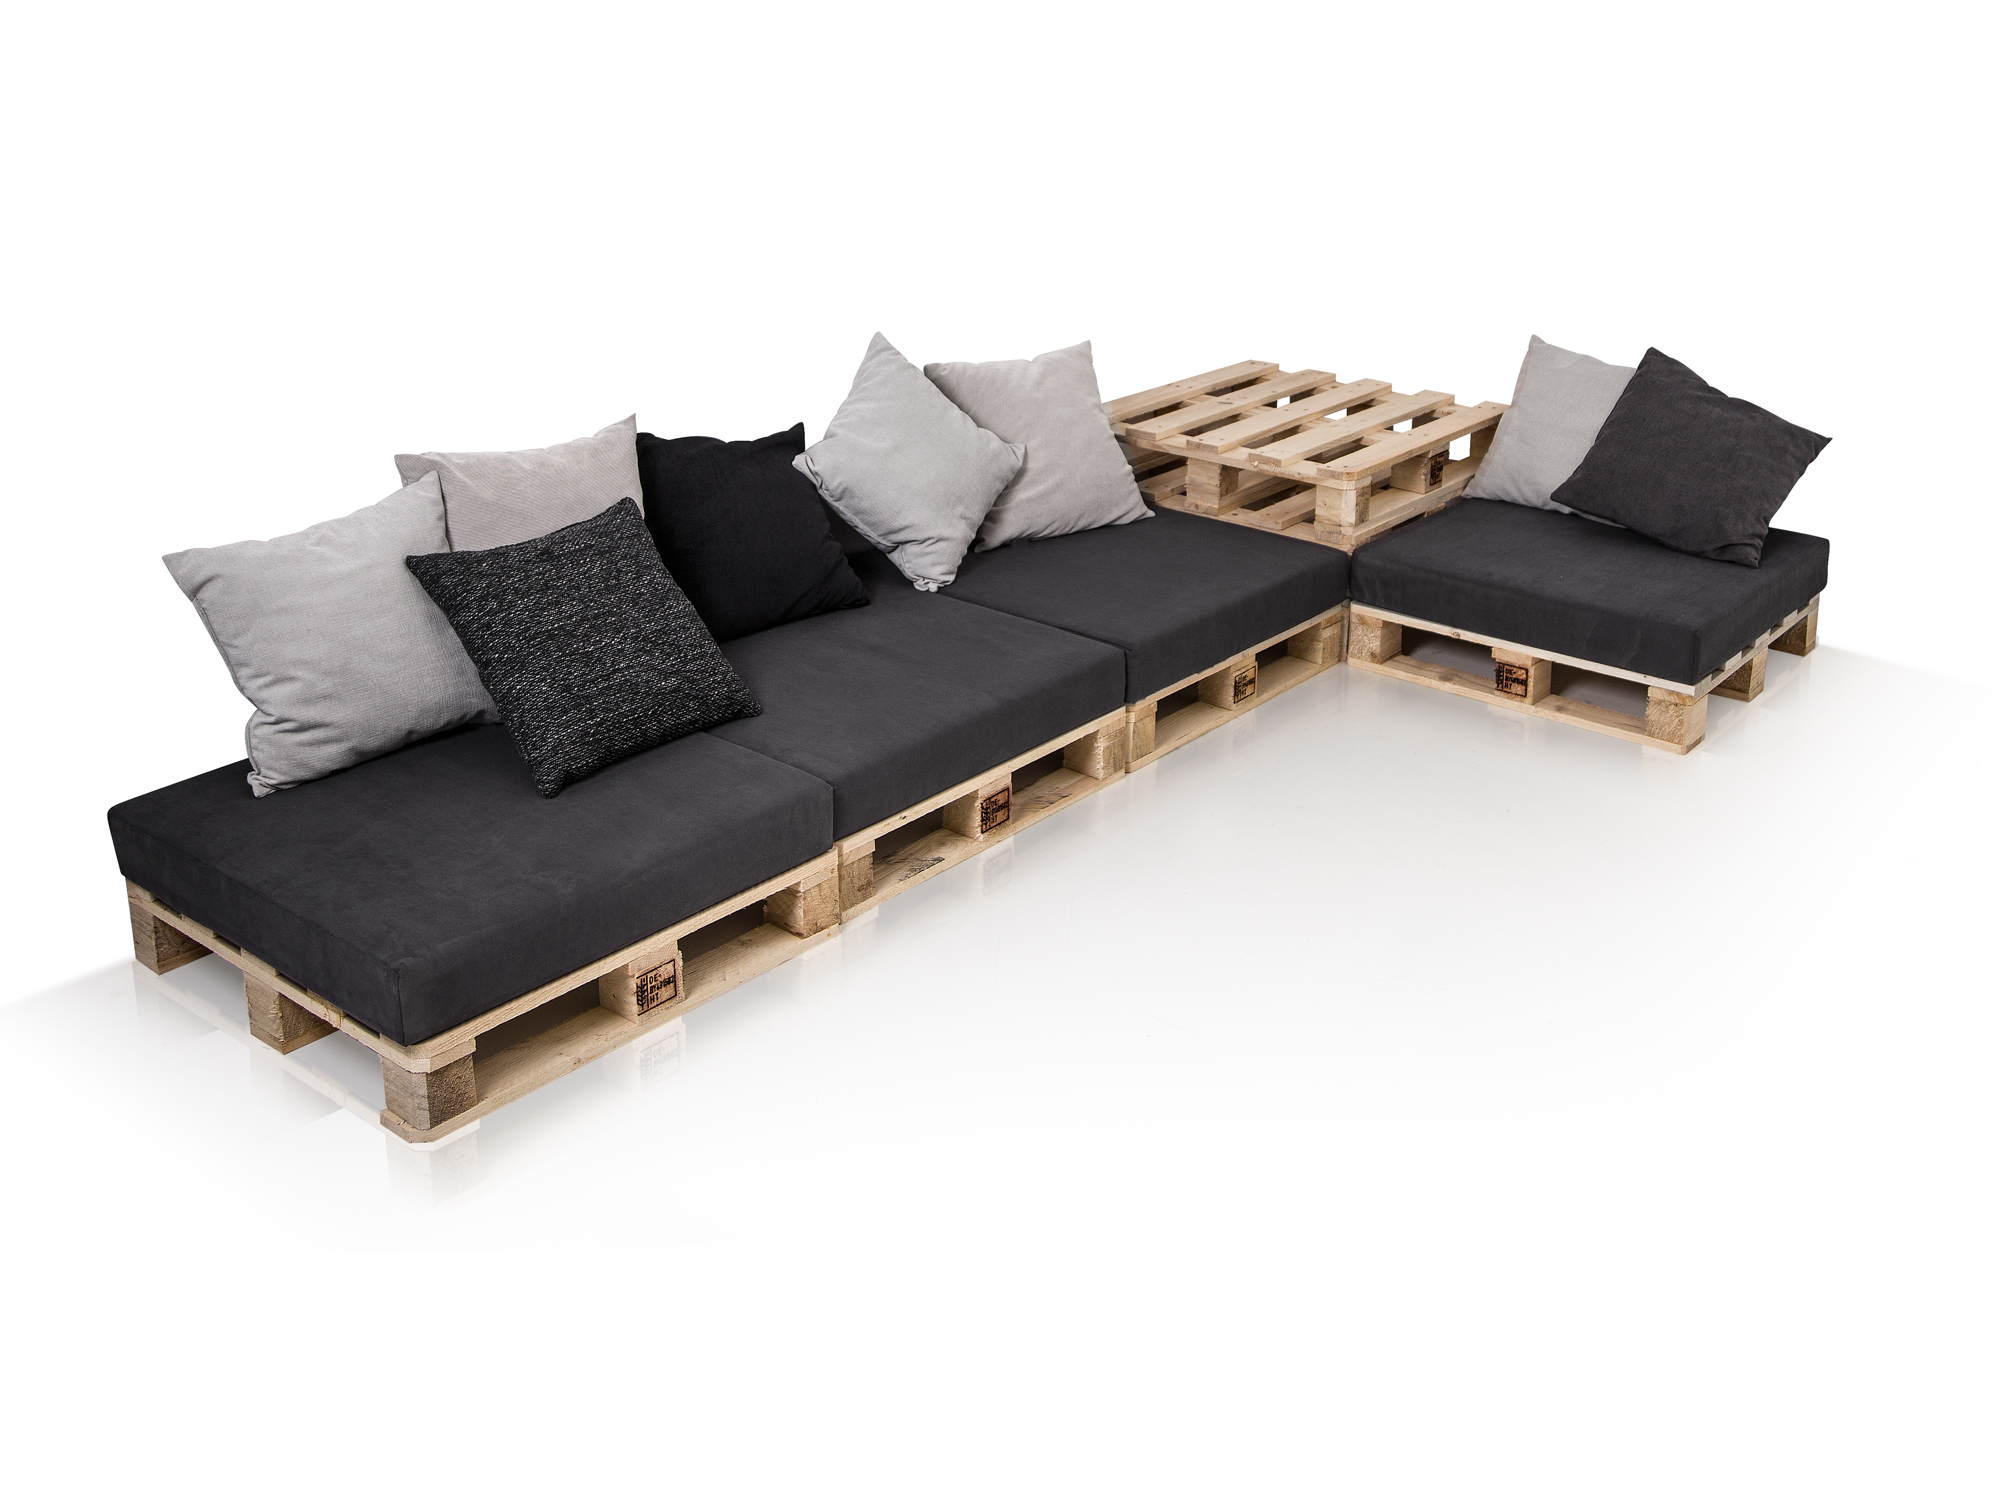 paletti sofalandschaft ii sofa aus paletten fichte massiv fichte natur. Black Bedroom Furniture Sets. Home Design Ideas